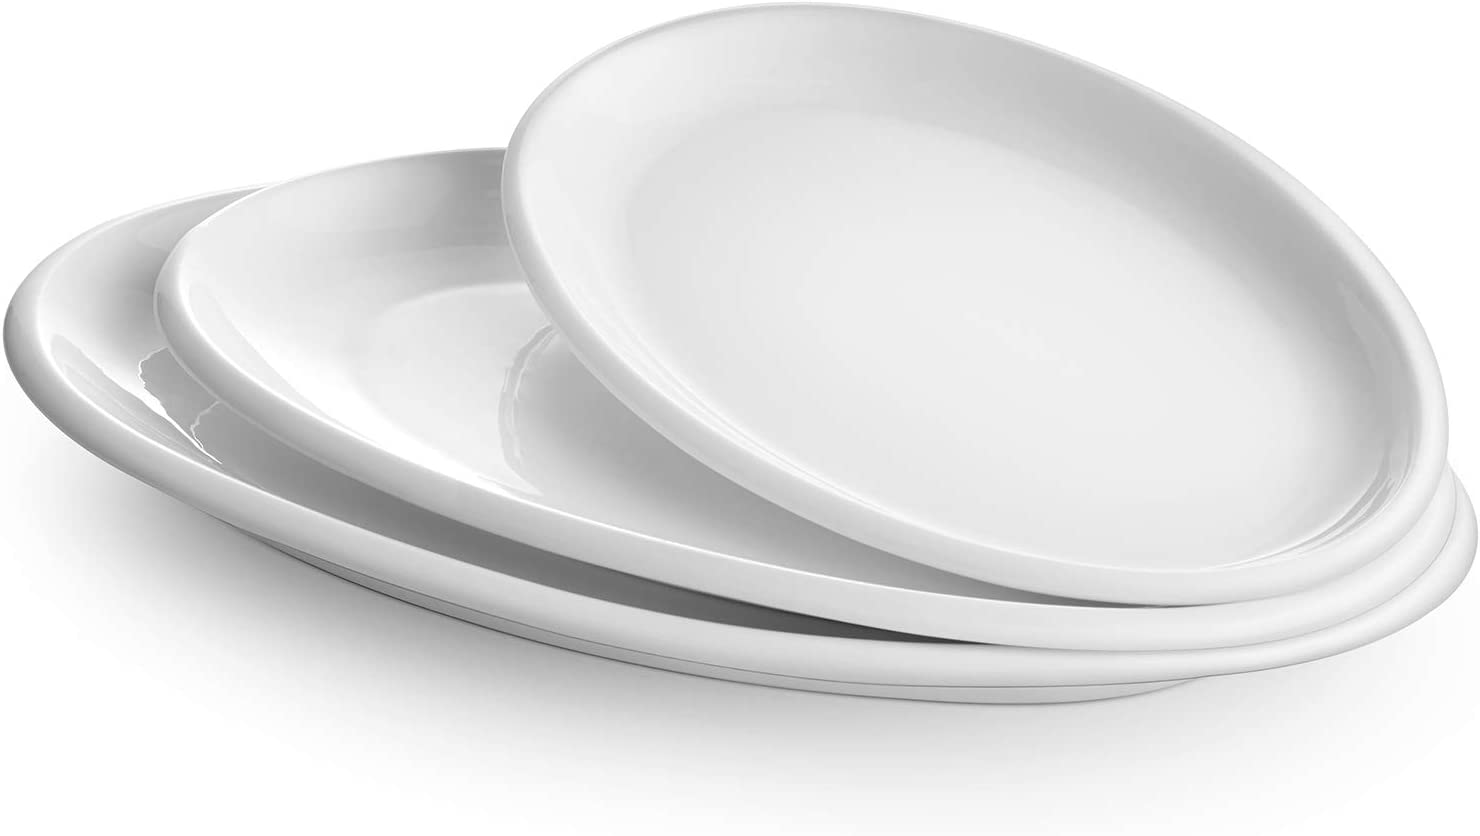 Amazon Com Dowan Large Serving Platters 16 14 12 Inches Oval Serving Platters Oval Serving Plates Dinner Plates Serving Dishes Ideal For Parties Restaurant Dessert Shop Set Of 3 White Platters